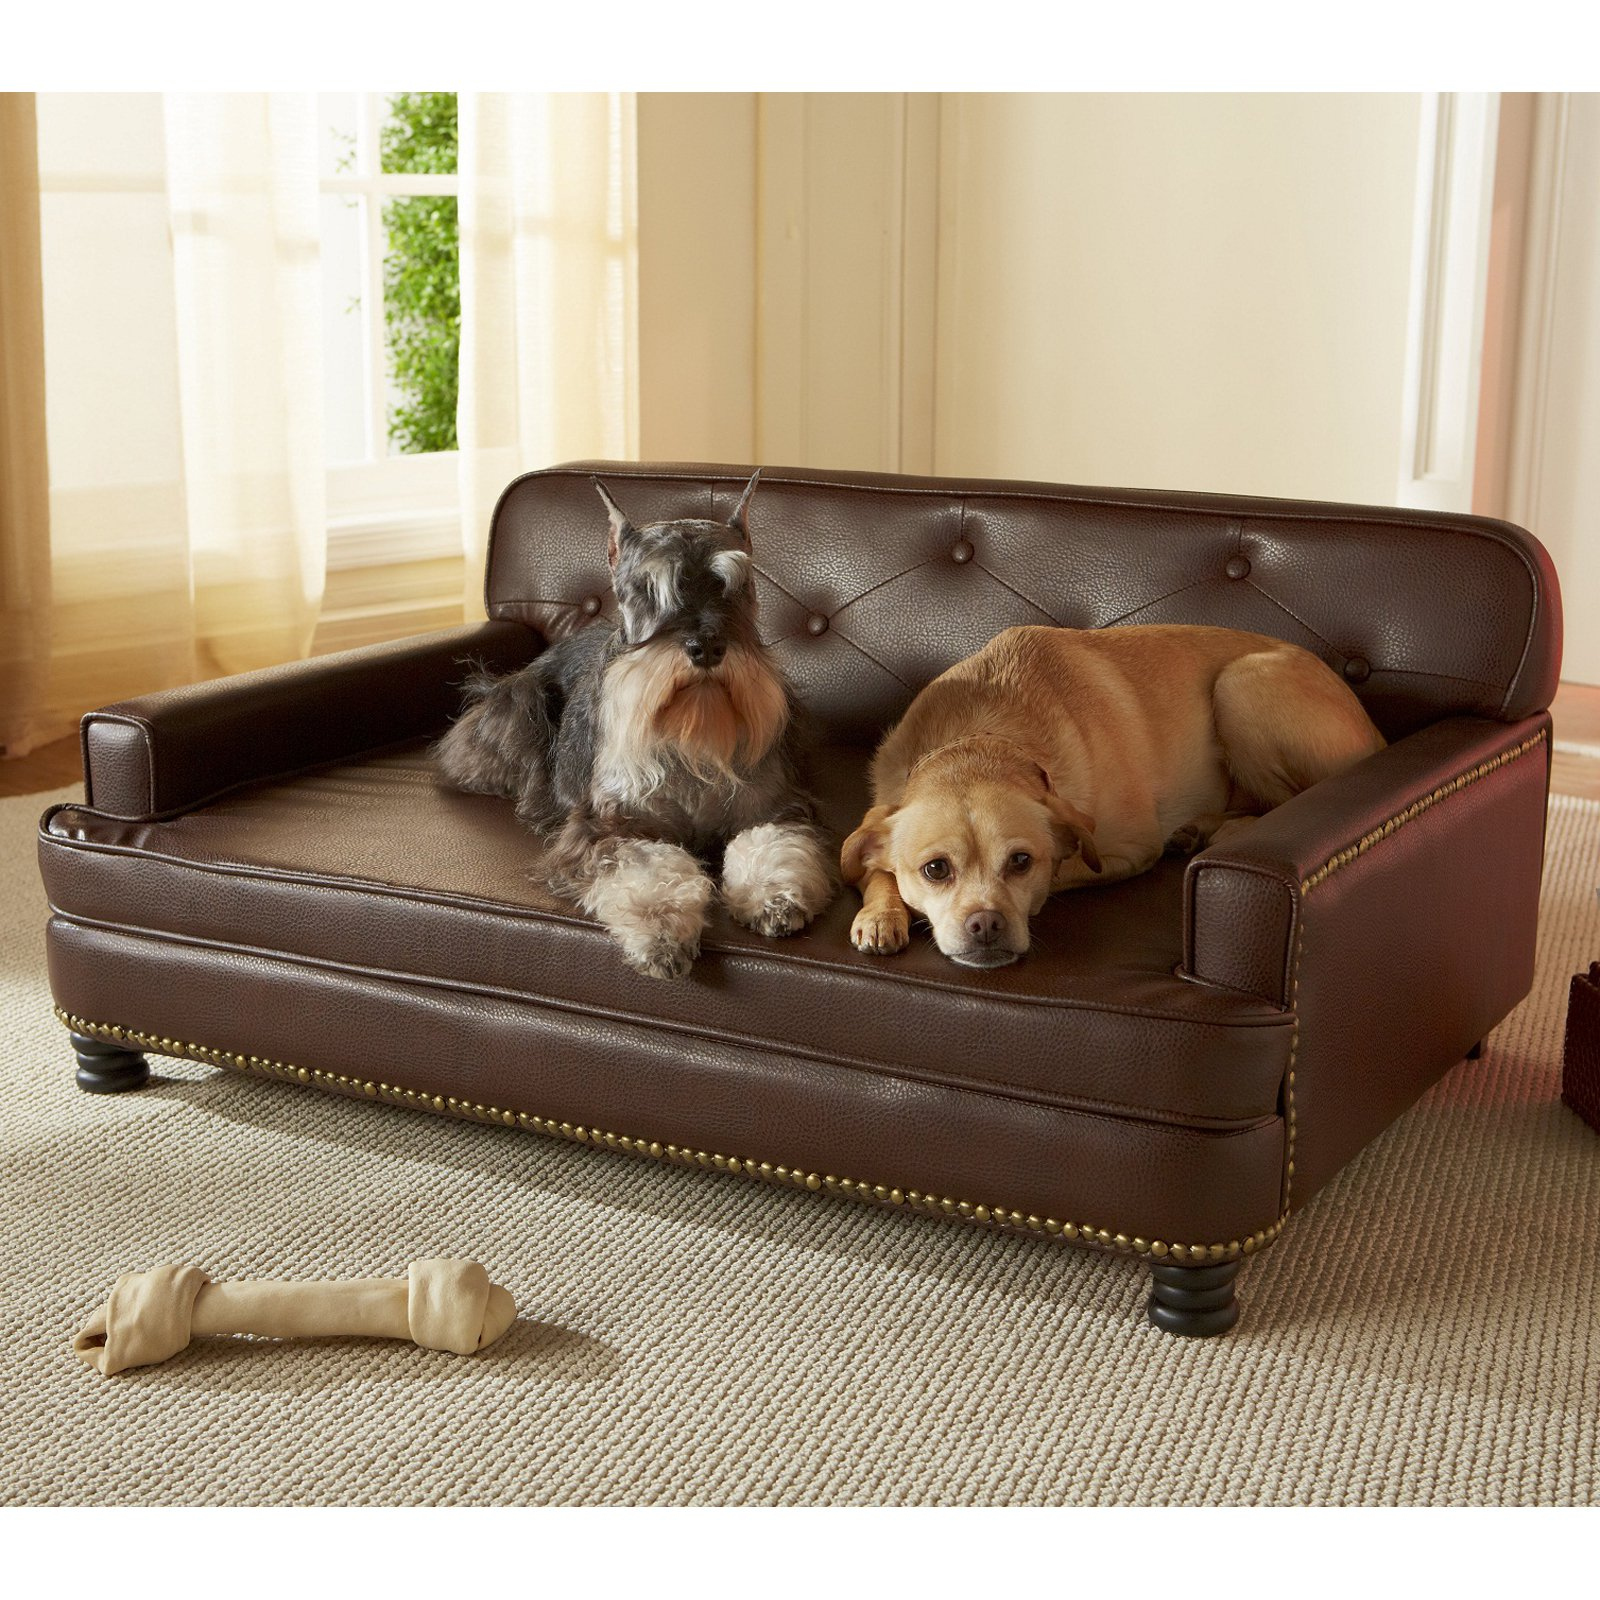 Dog Beds Pet Details About Brown Dog Bed Faux Indoor Leather Raised Pet Sofa Couch Upholstered Cushion Cat